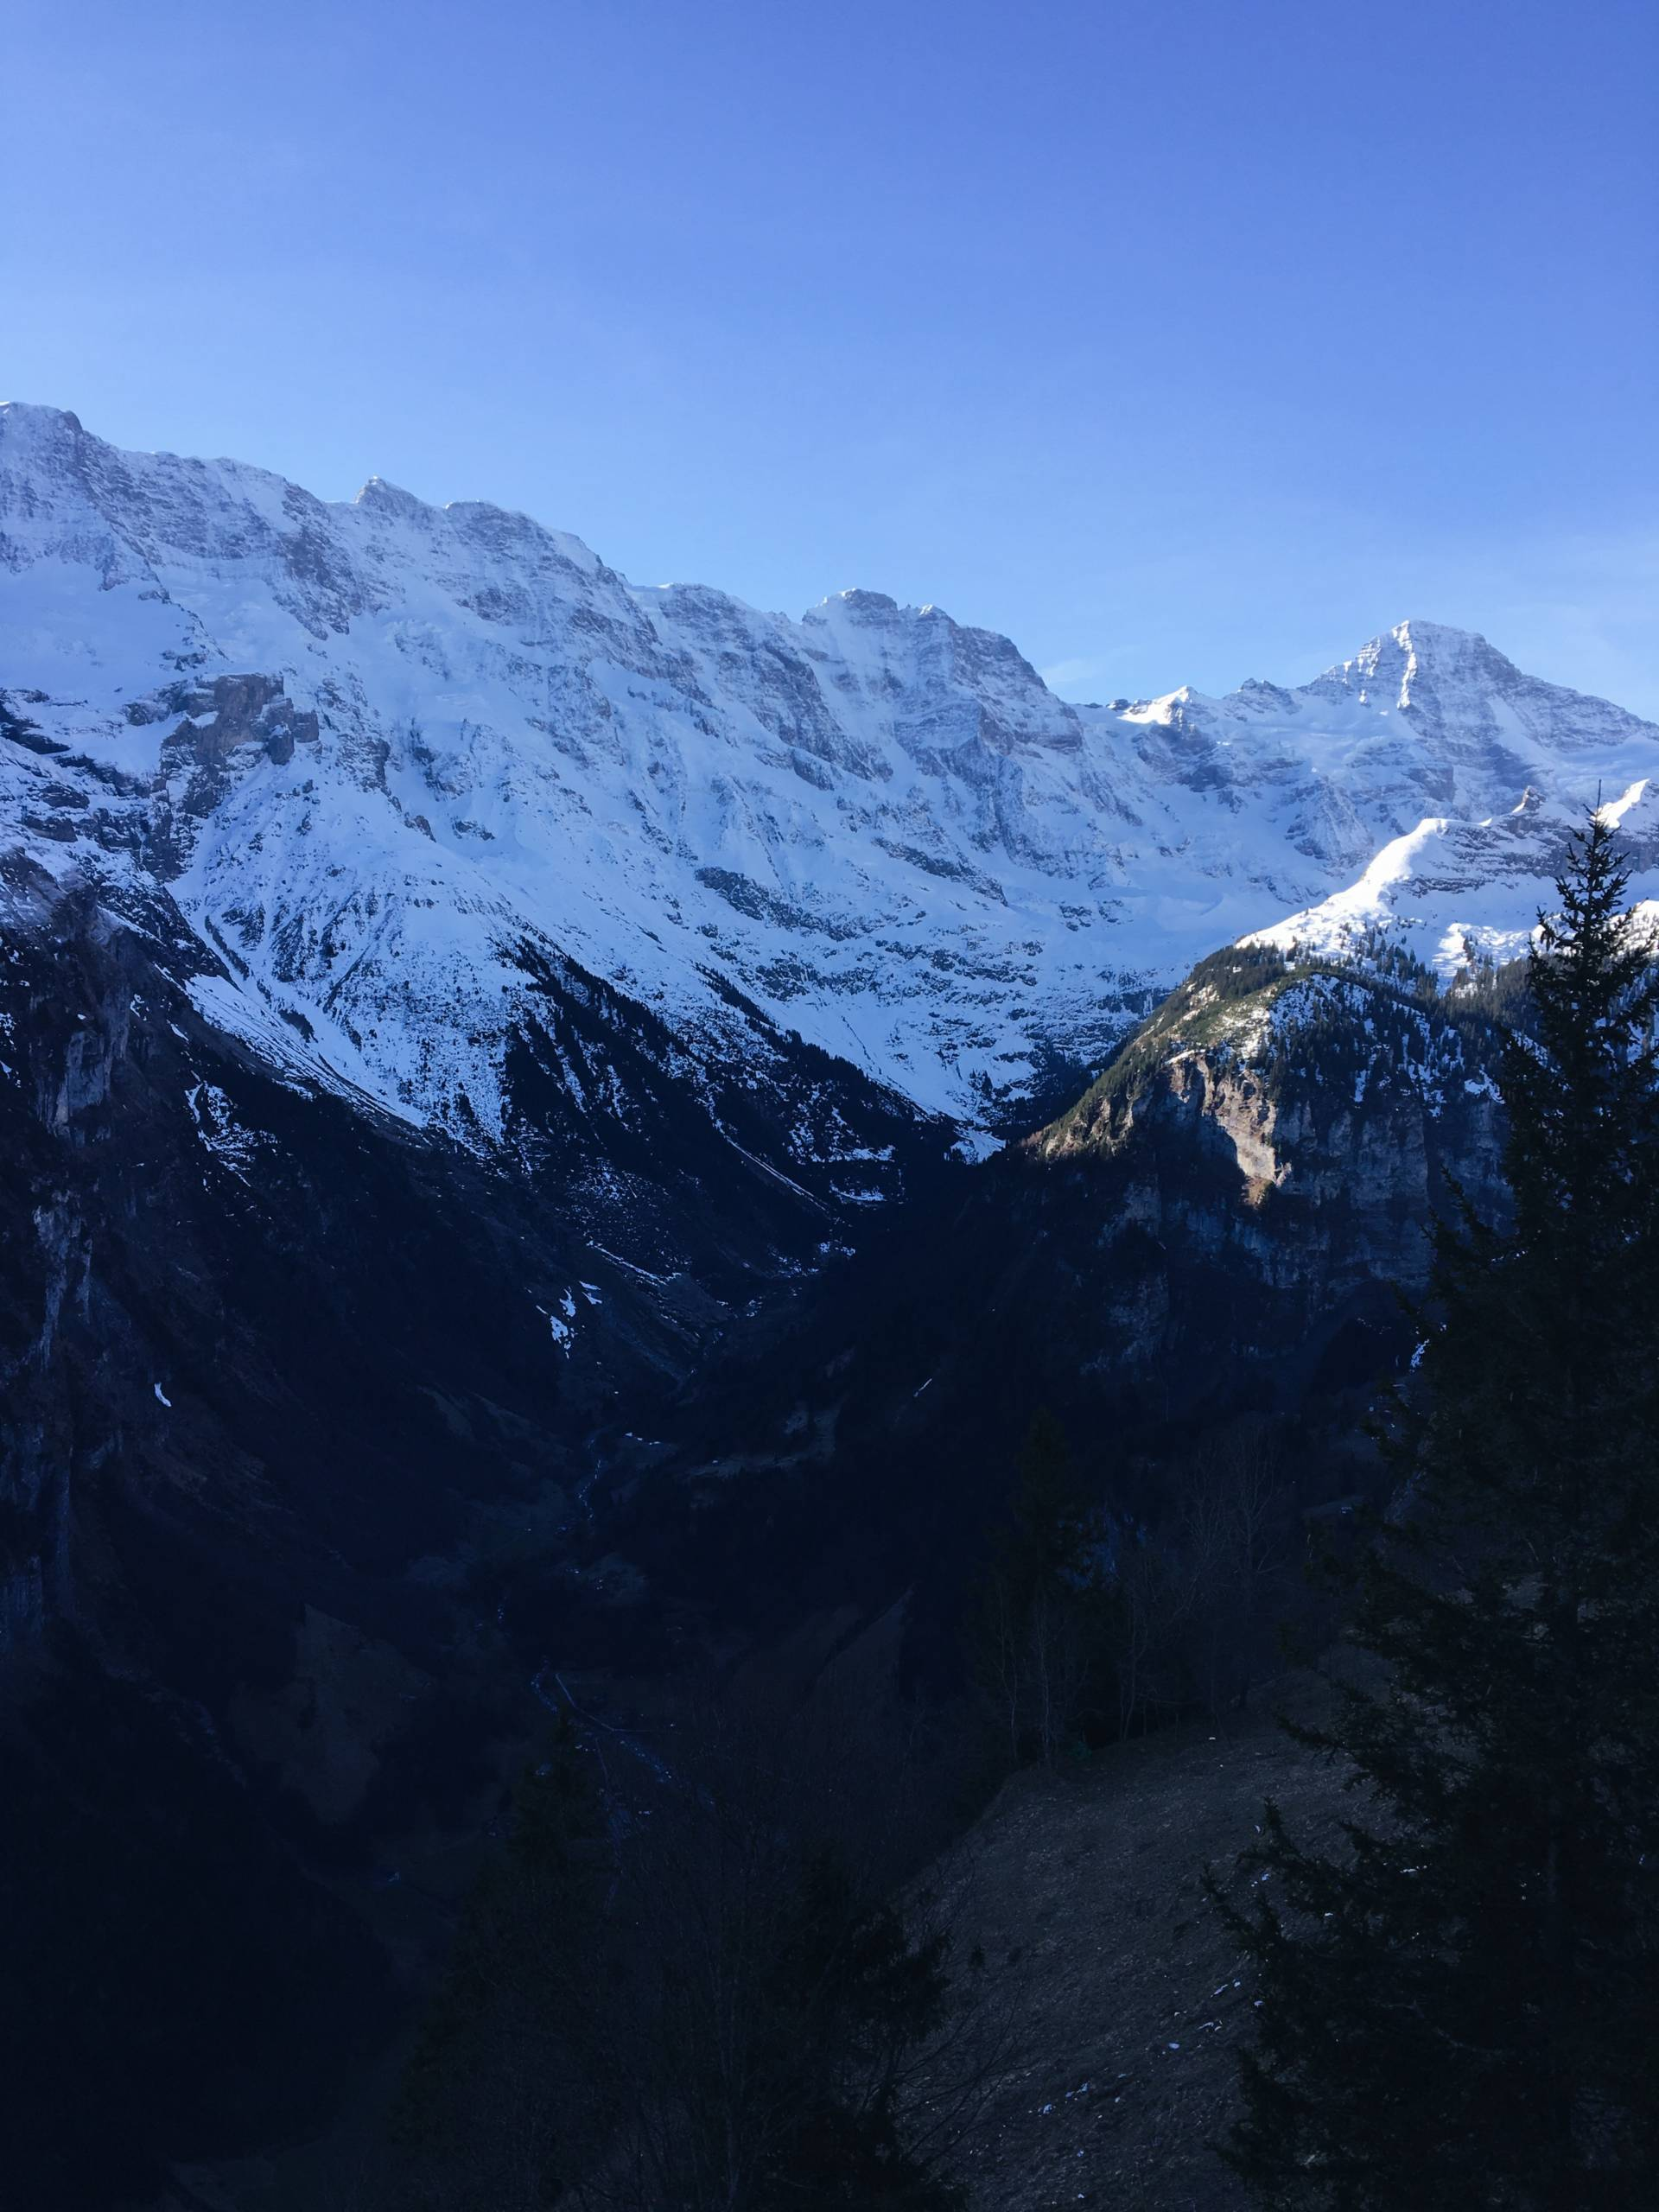 Waking up in the Swiss Alps